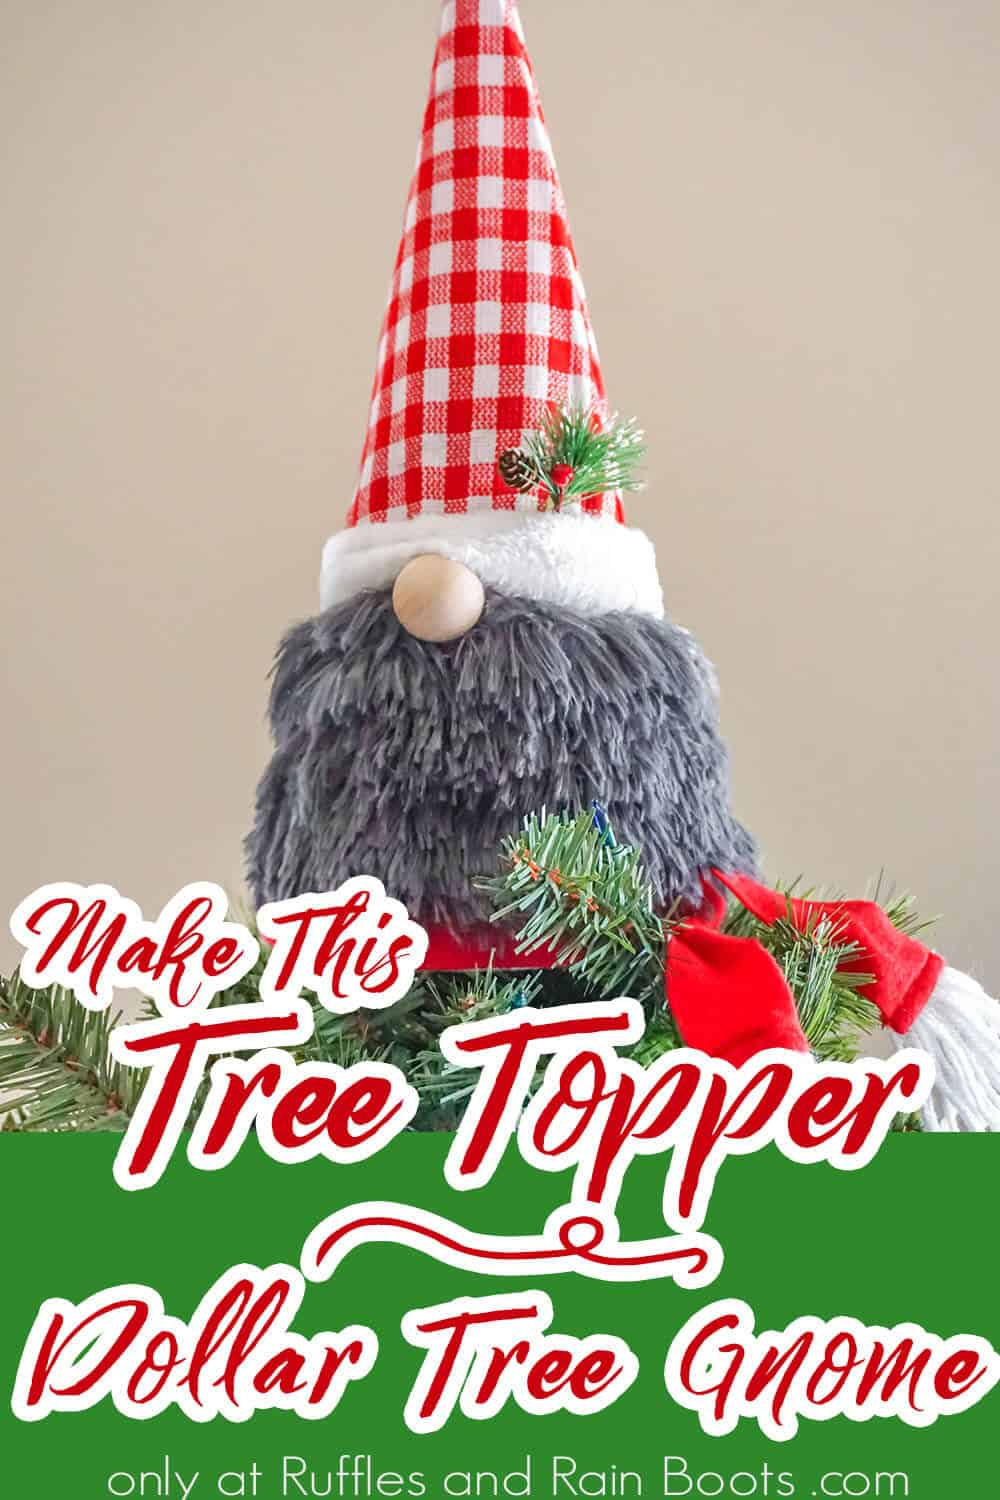 christmas tree topper gnome from dollar tree supplies with text which reads make this tree topper dollar tree gnome